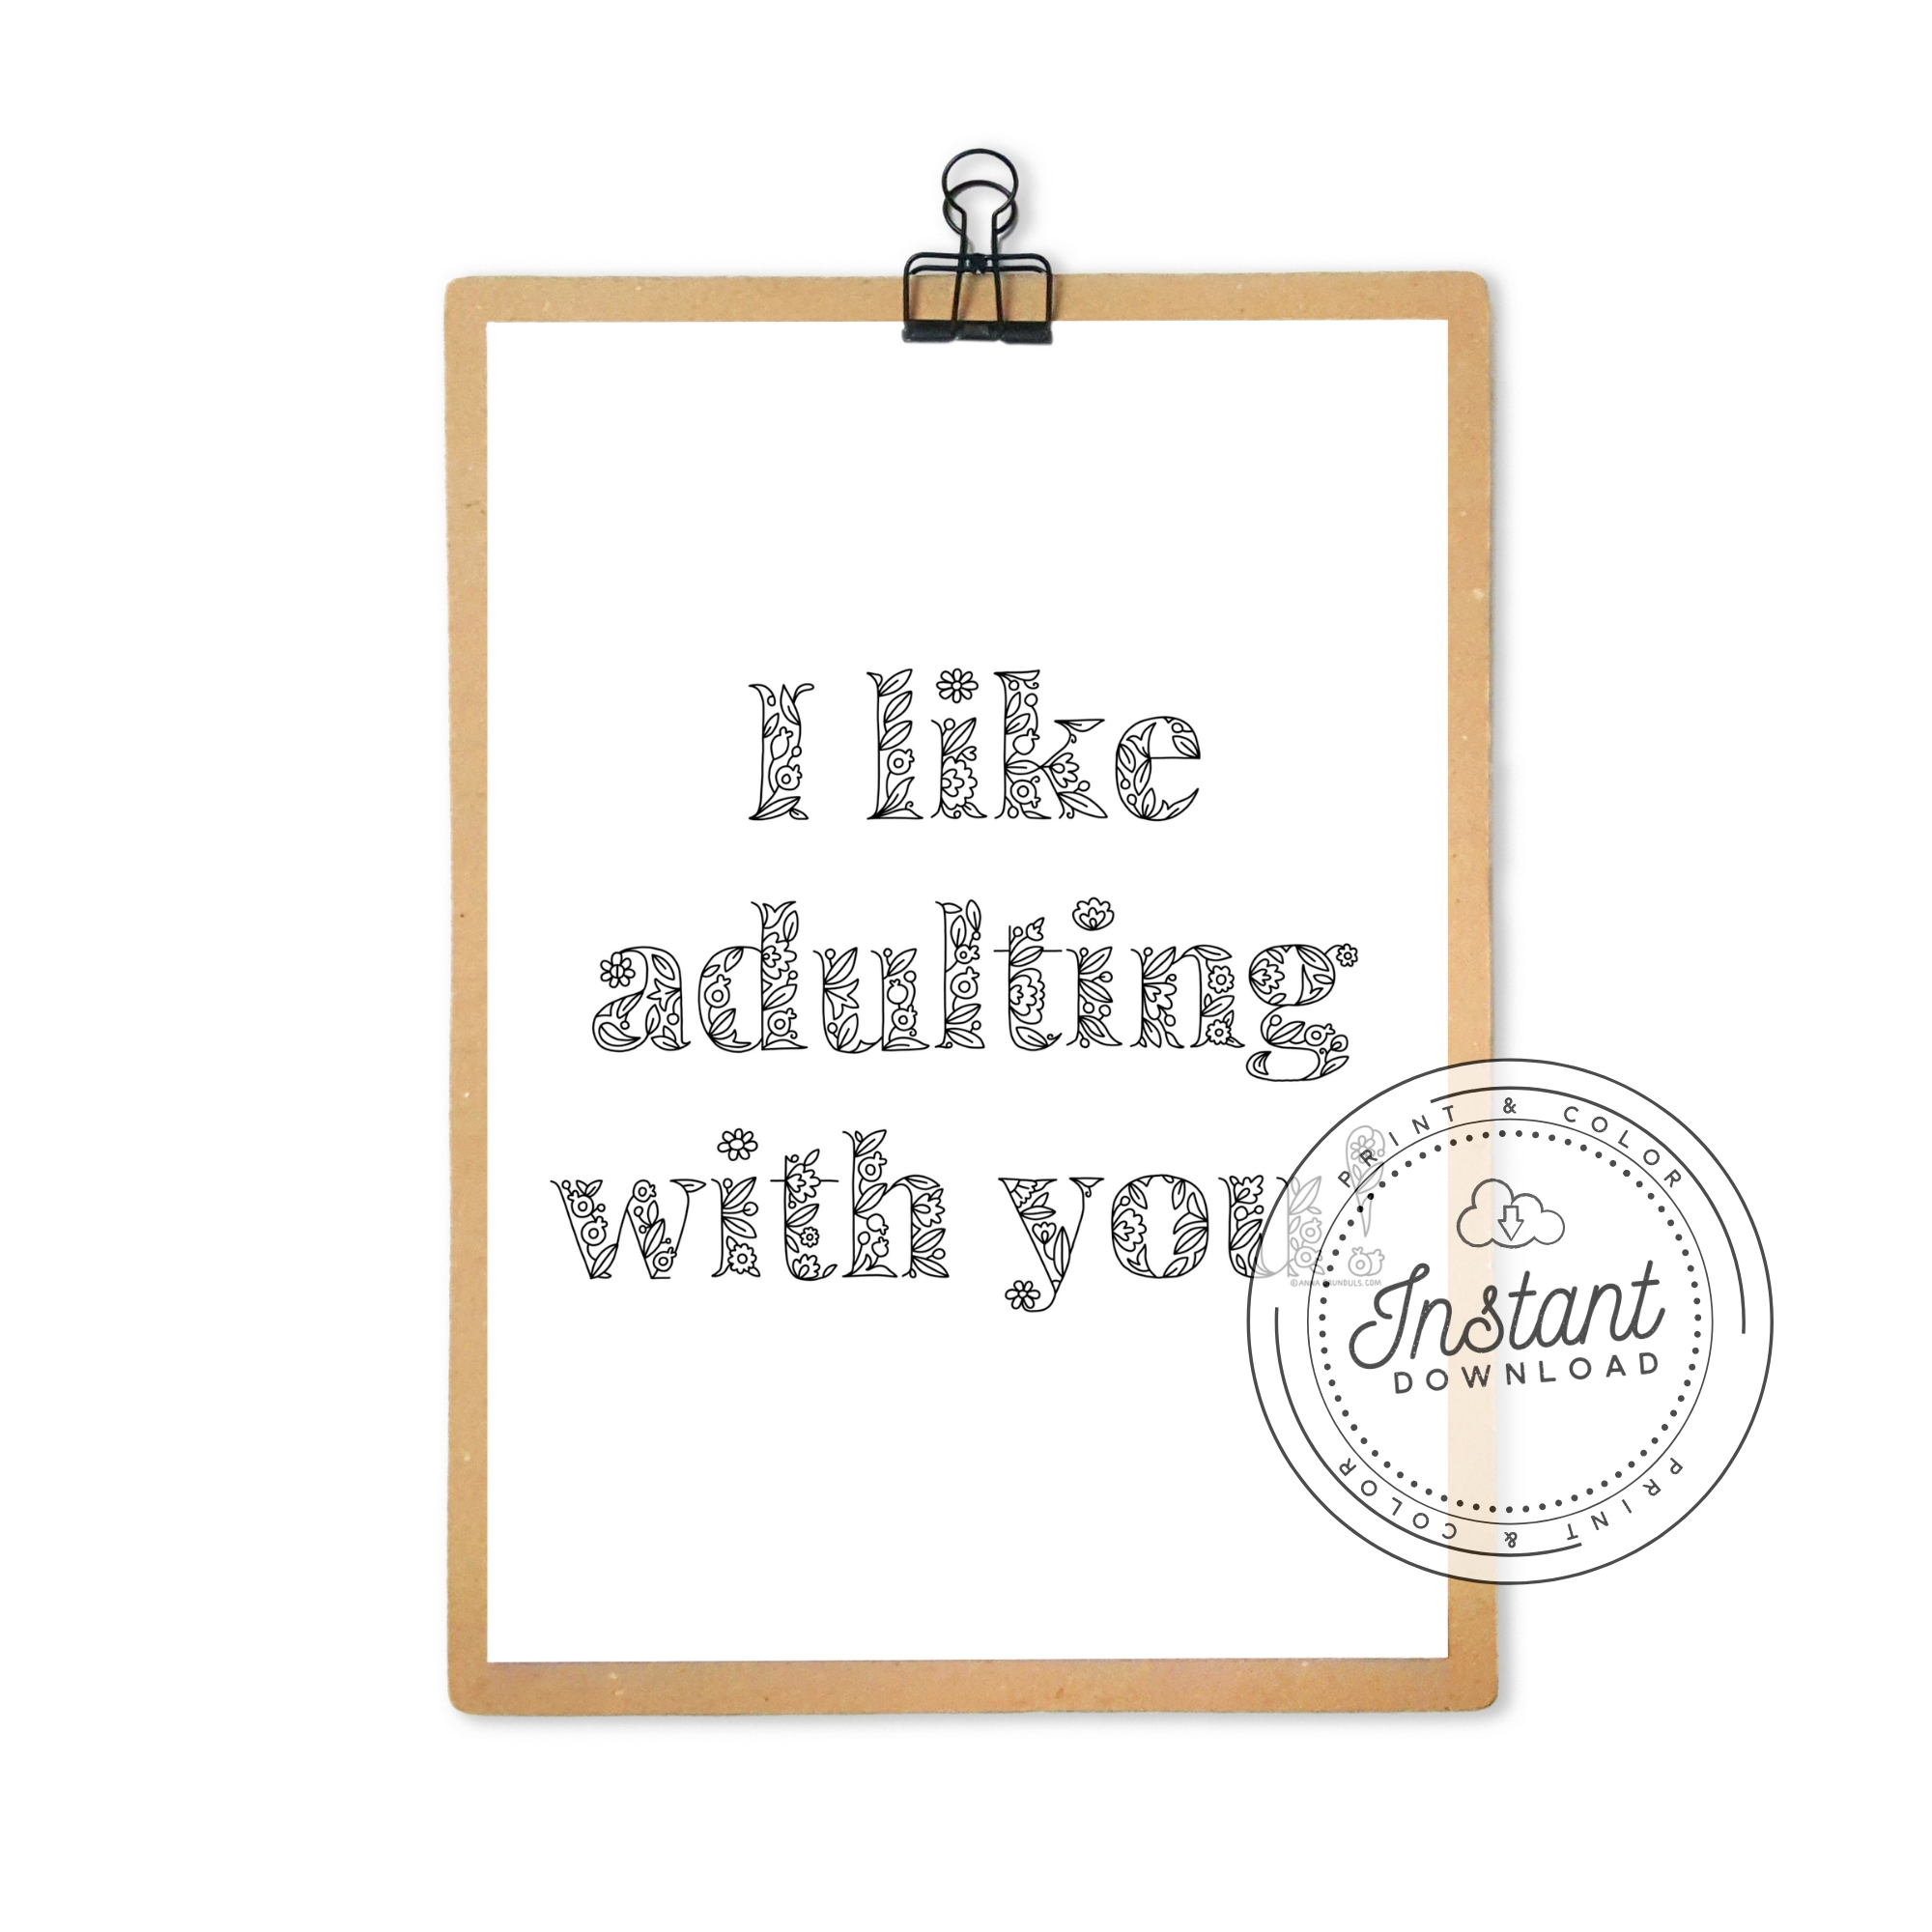 I Like Adulting With You Printable Coloring Page for Adult Coloring with Flowers Floral Typography, Hand Lettering